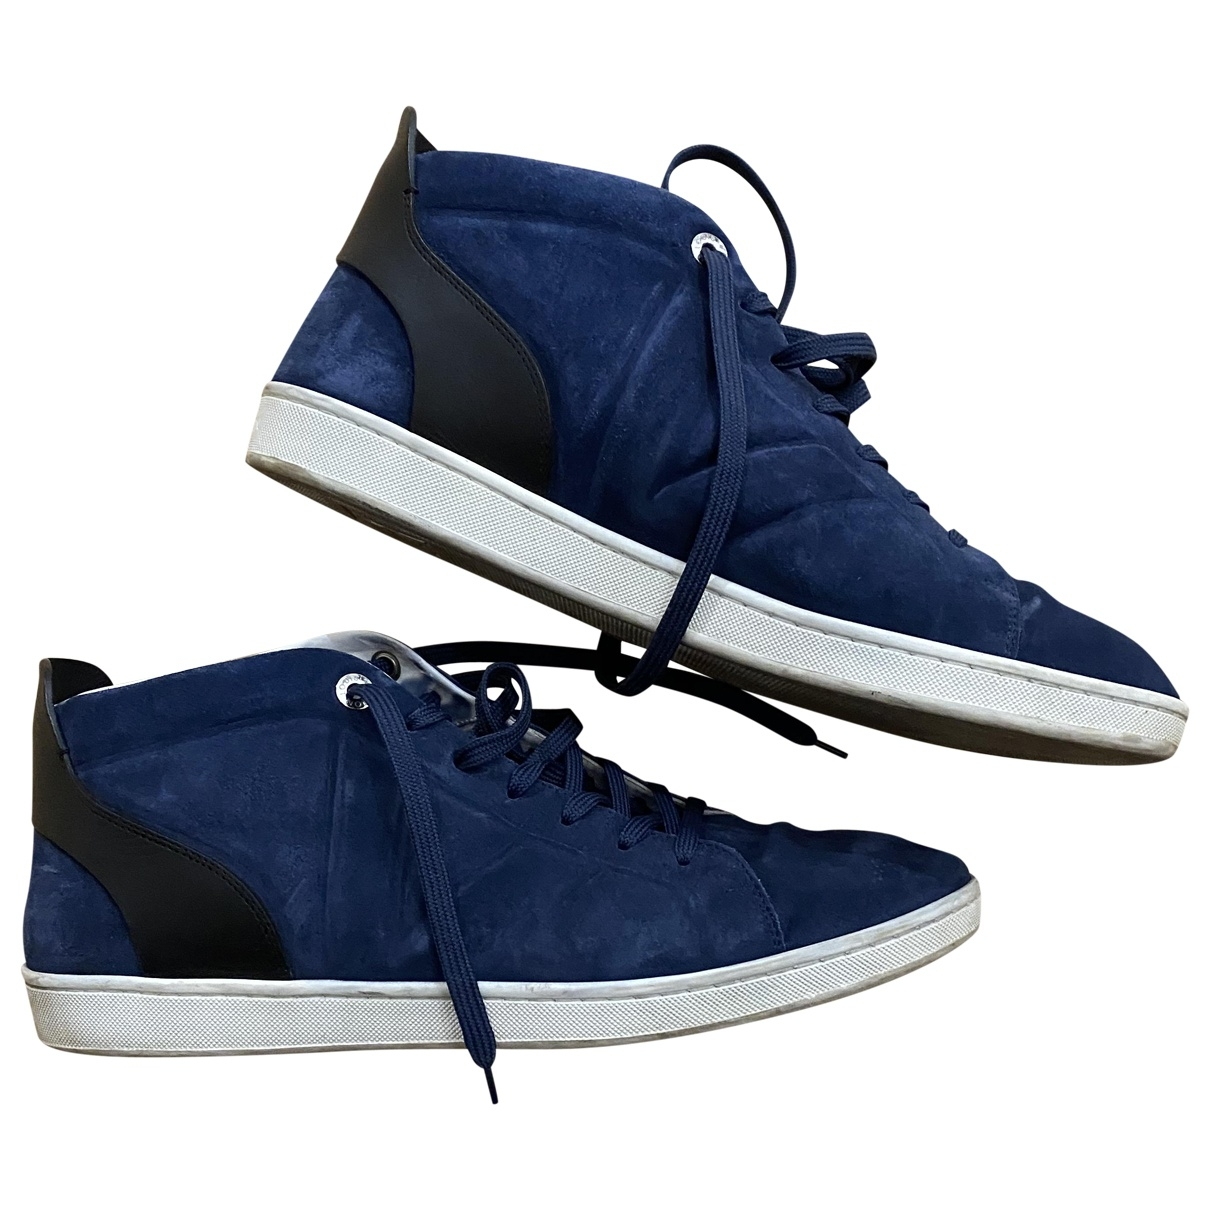 Louis Vuitton Fuselage Navy Suede Trainers for Men 10 US